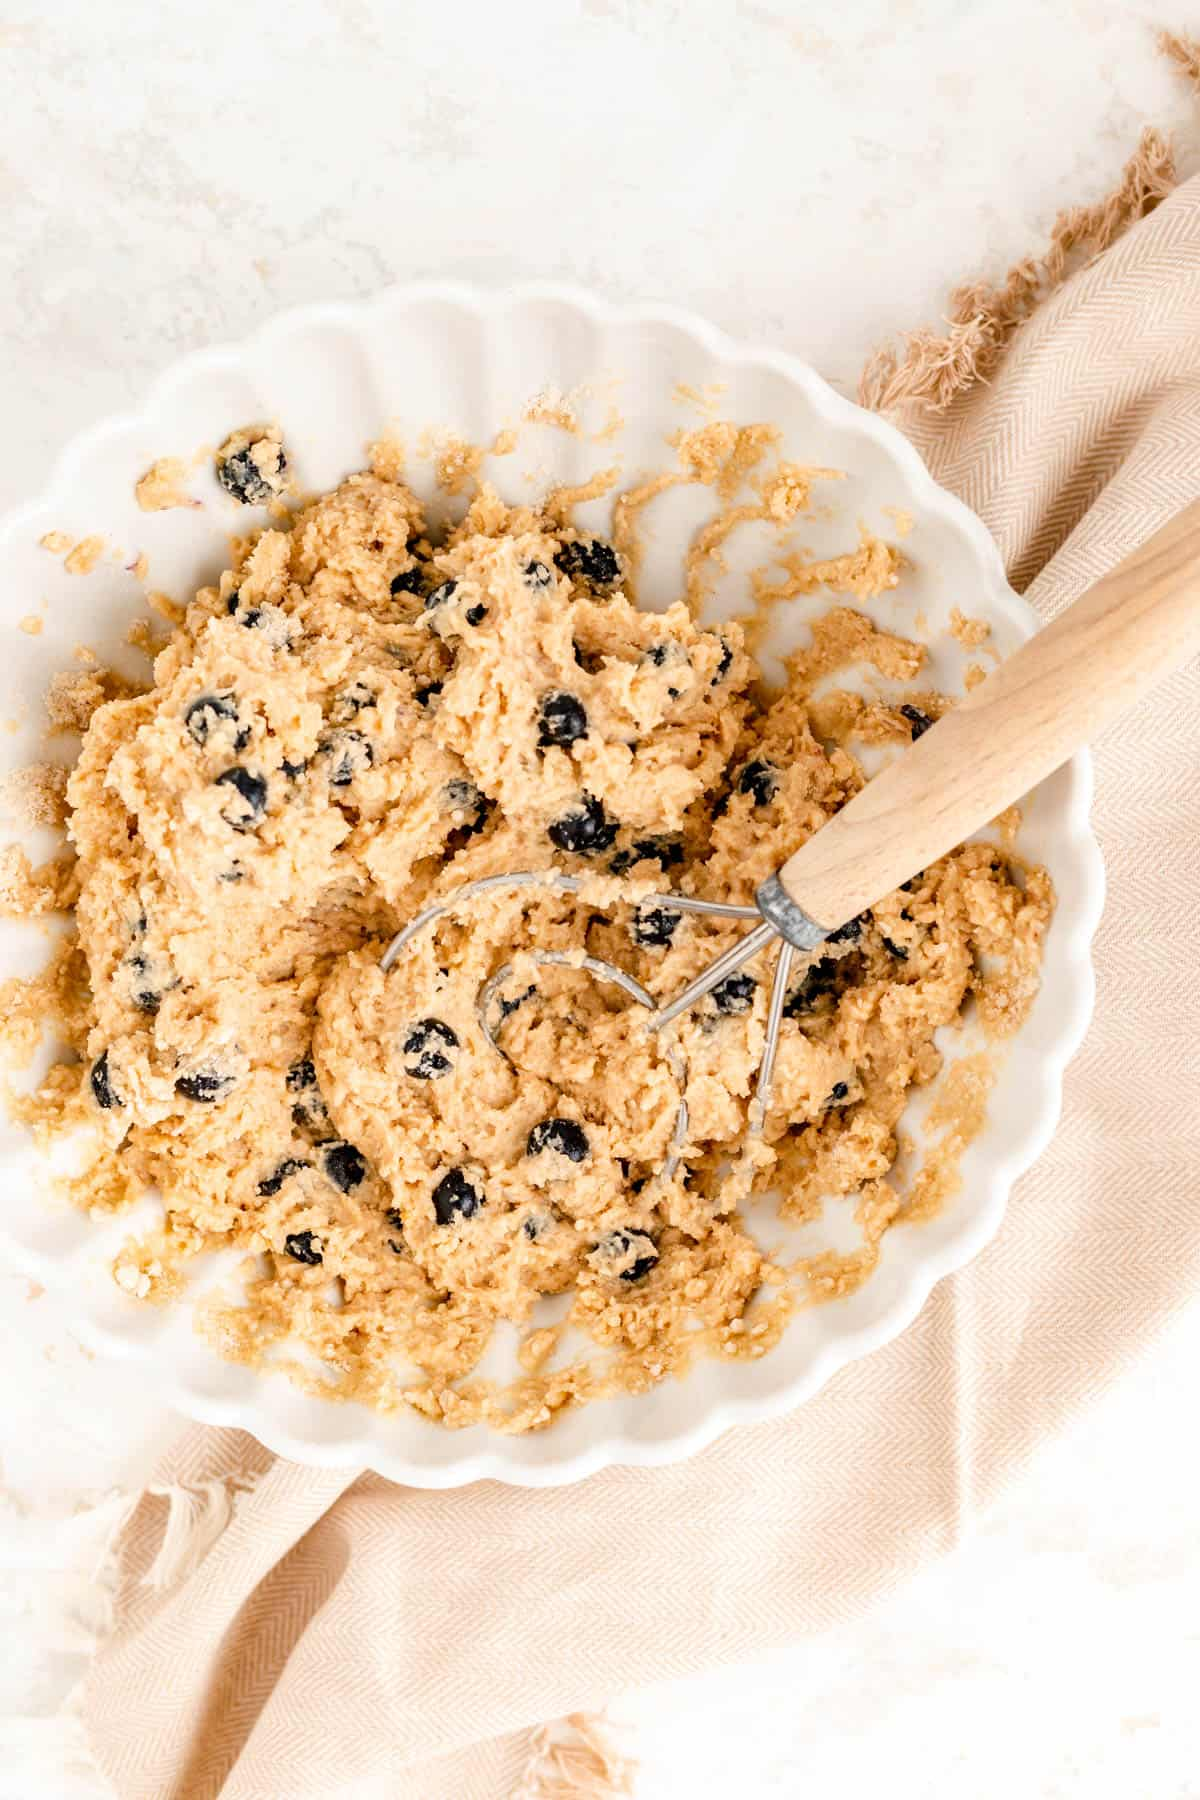 fully mixed blueberry scone batter in a white bowl with a dough whisk in it